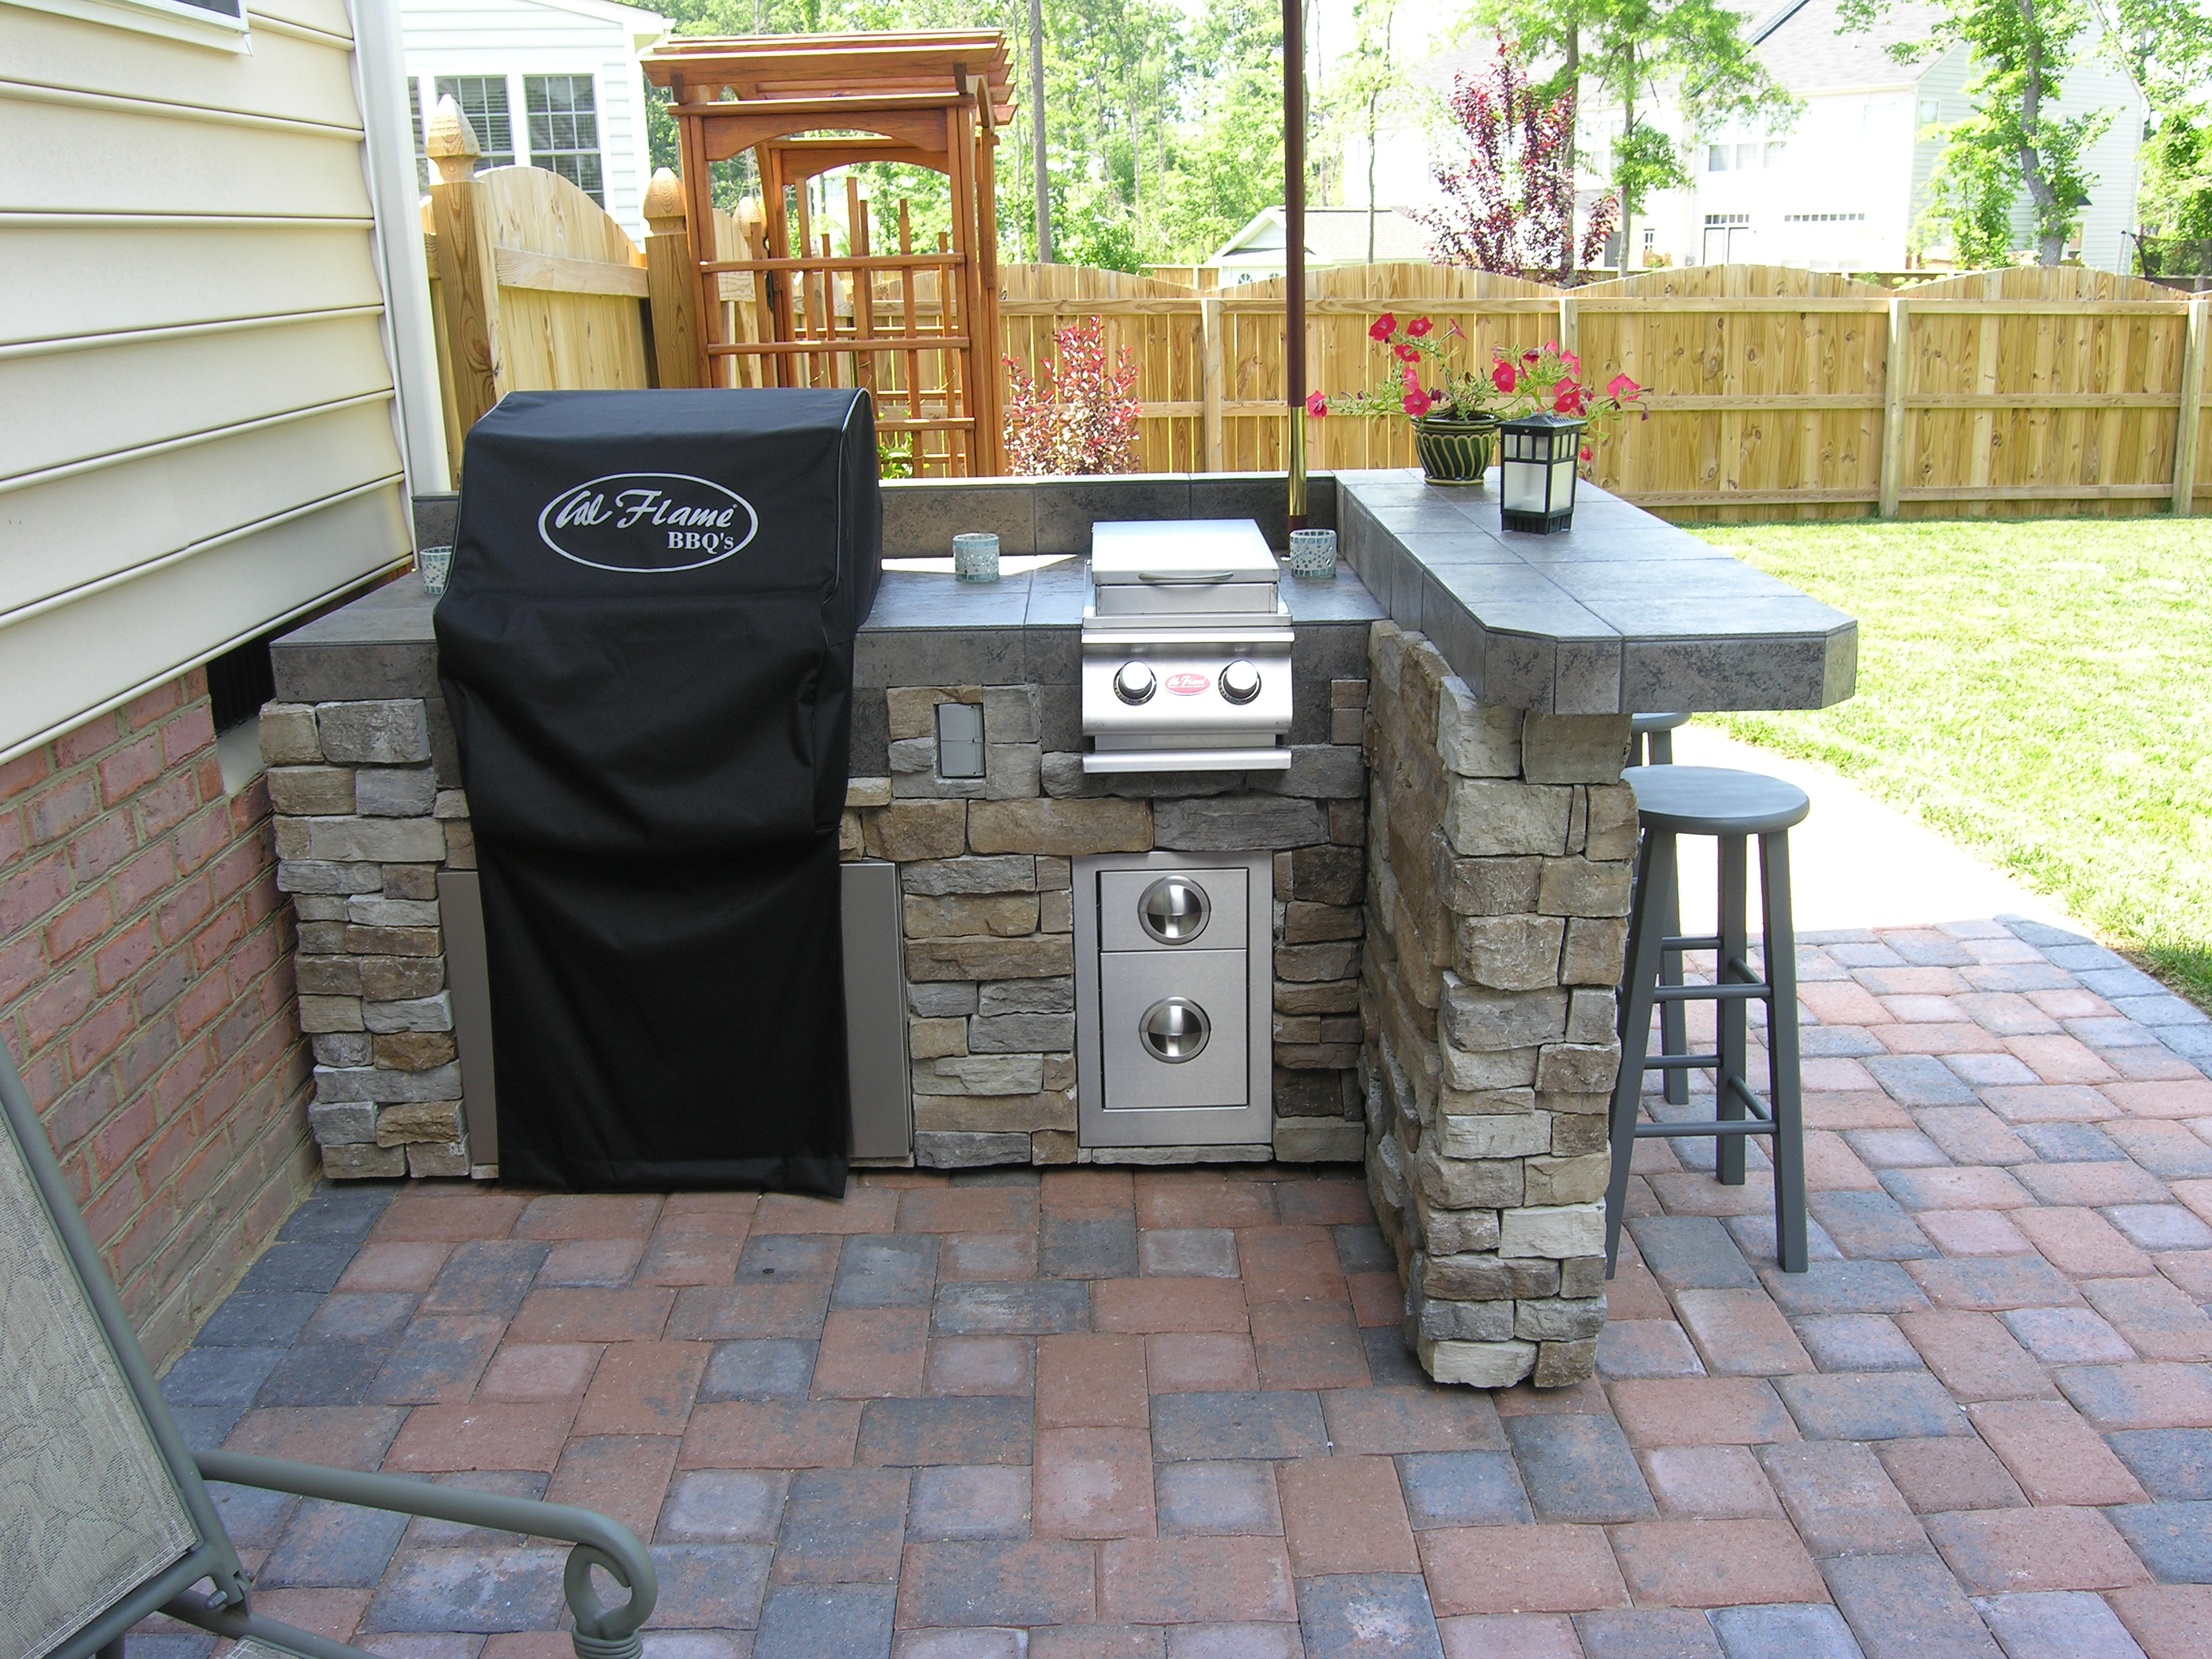 best 25 built in grill ideas on pinterest outdoor grill area best 25 built in grill - Patio Grill Ideas